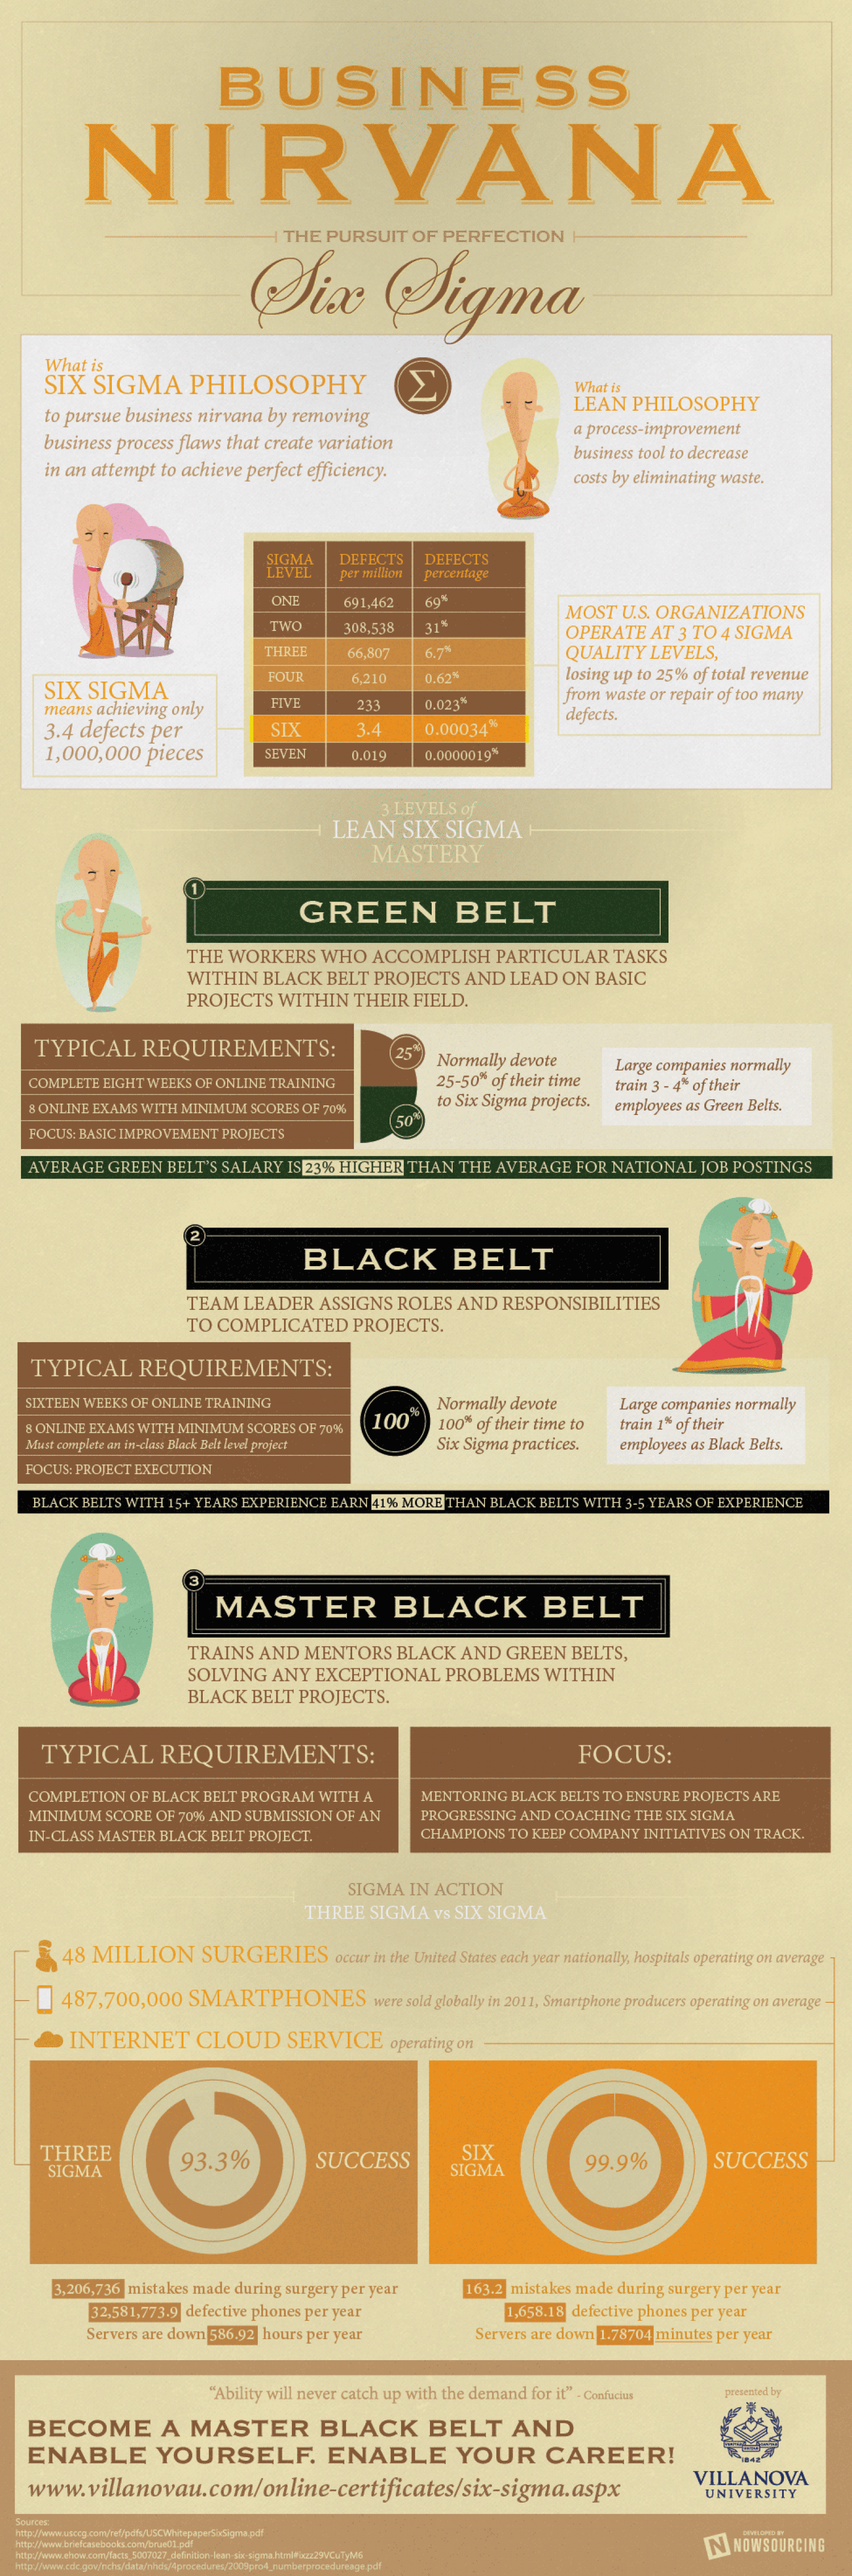 Business Nirvana: The Pursuit of Perfection - Six Sigma Infographic